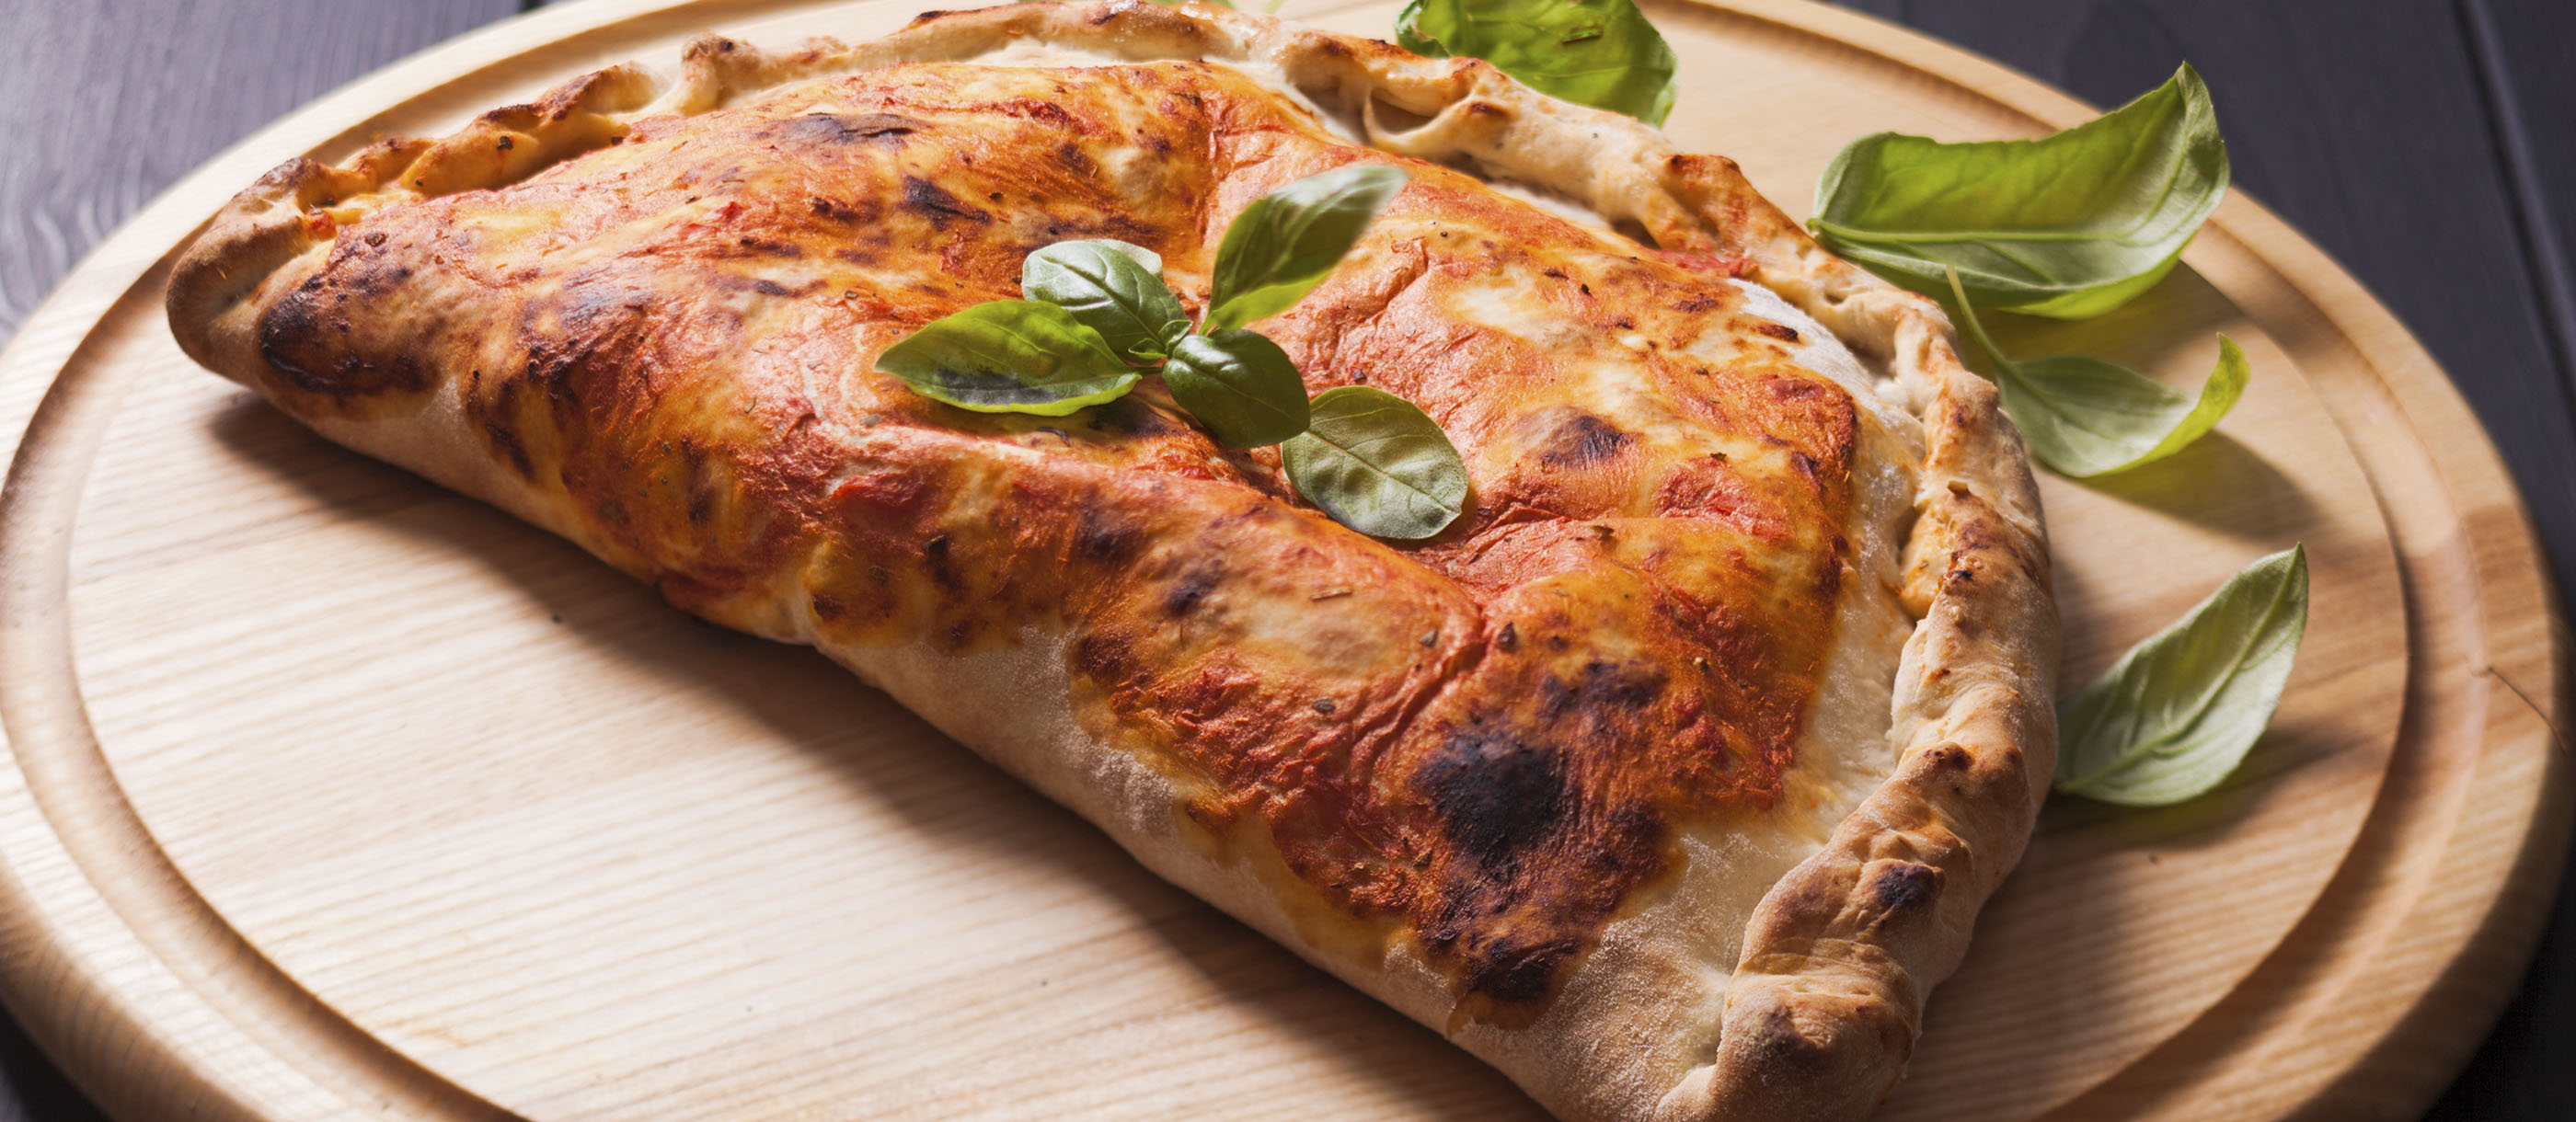 Calzone Pizza Authentic Recipe | TasteAtlas